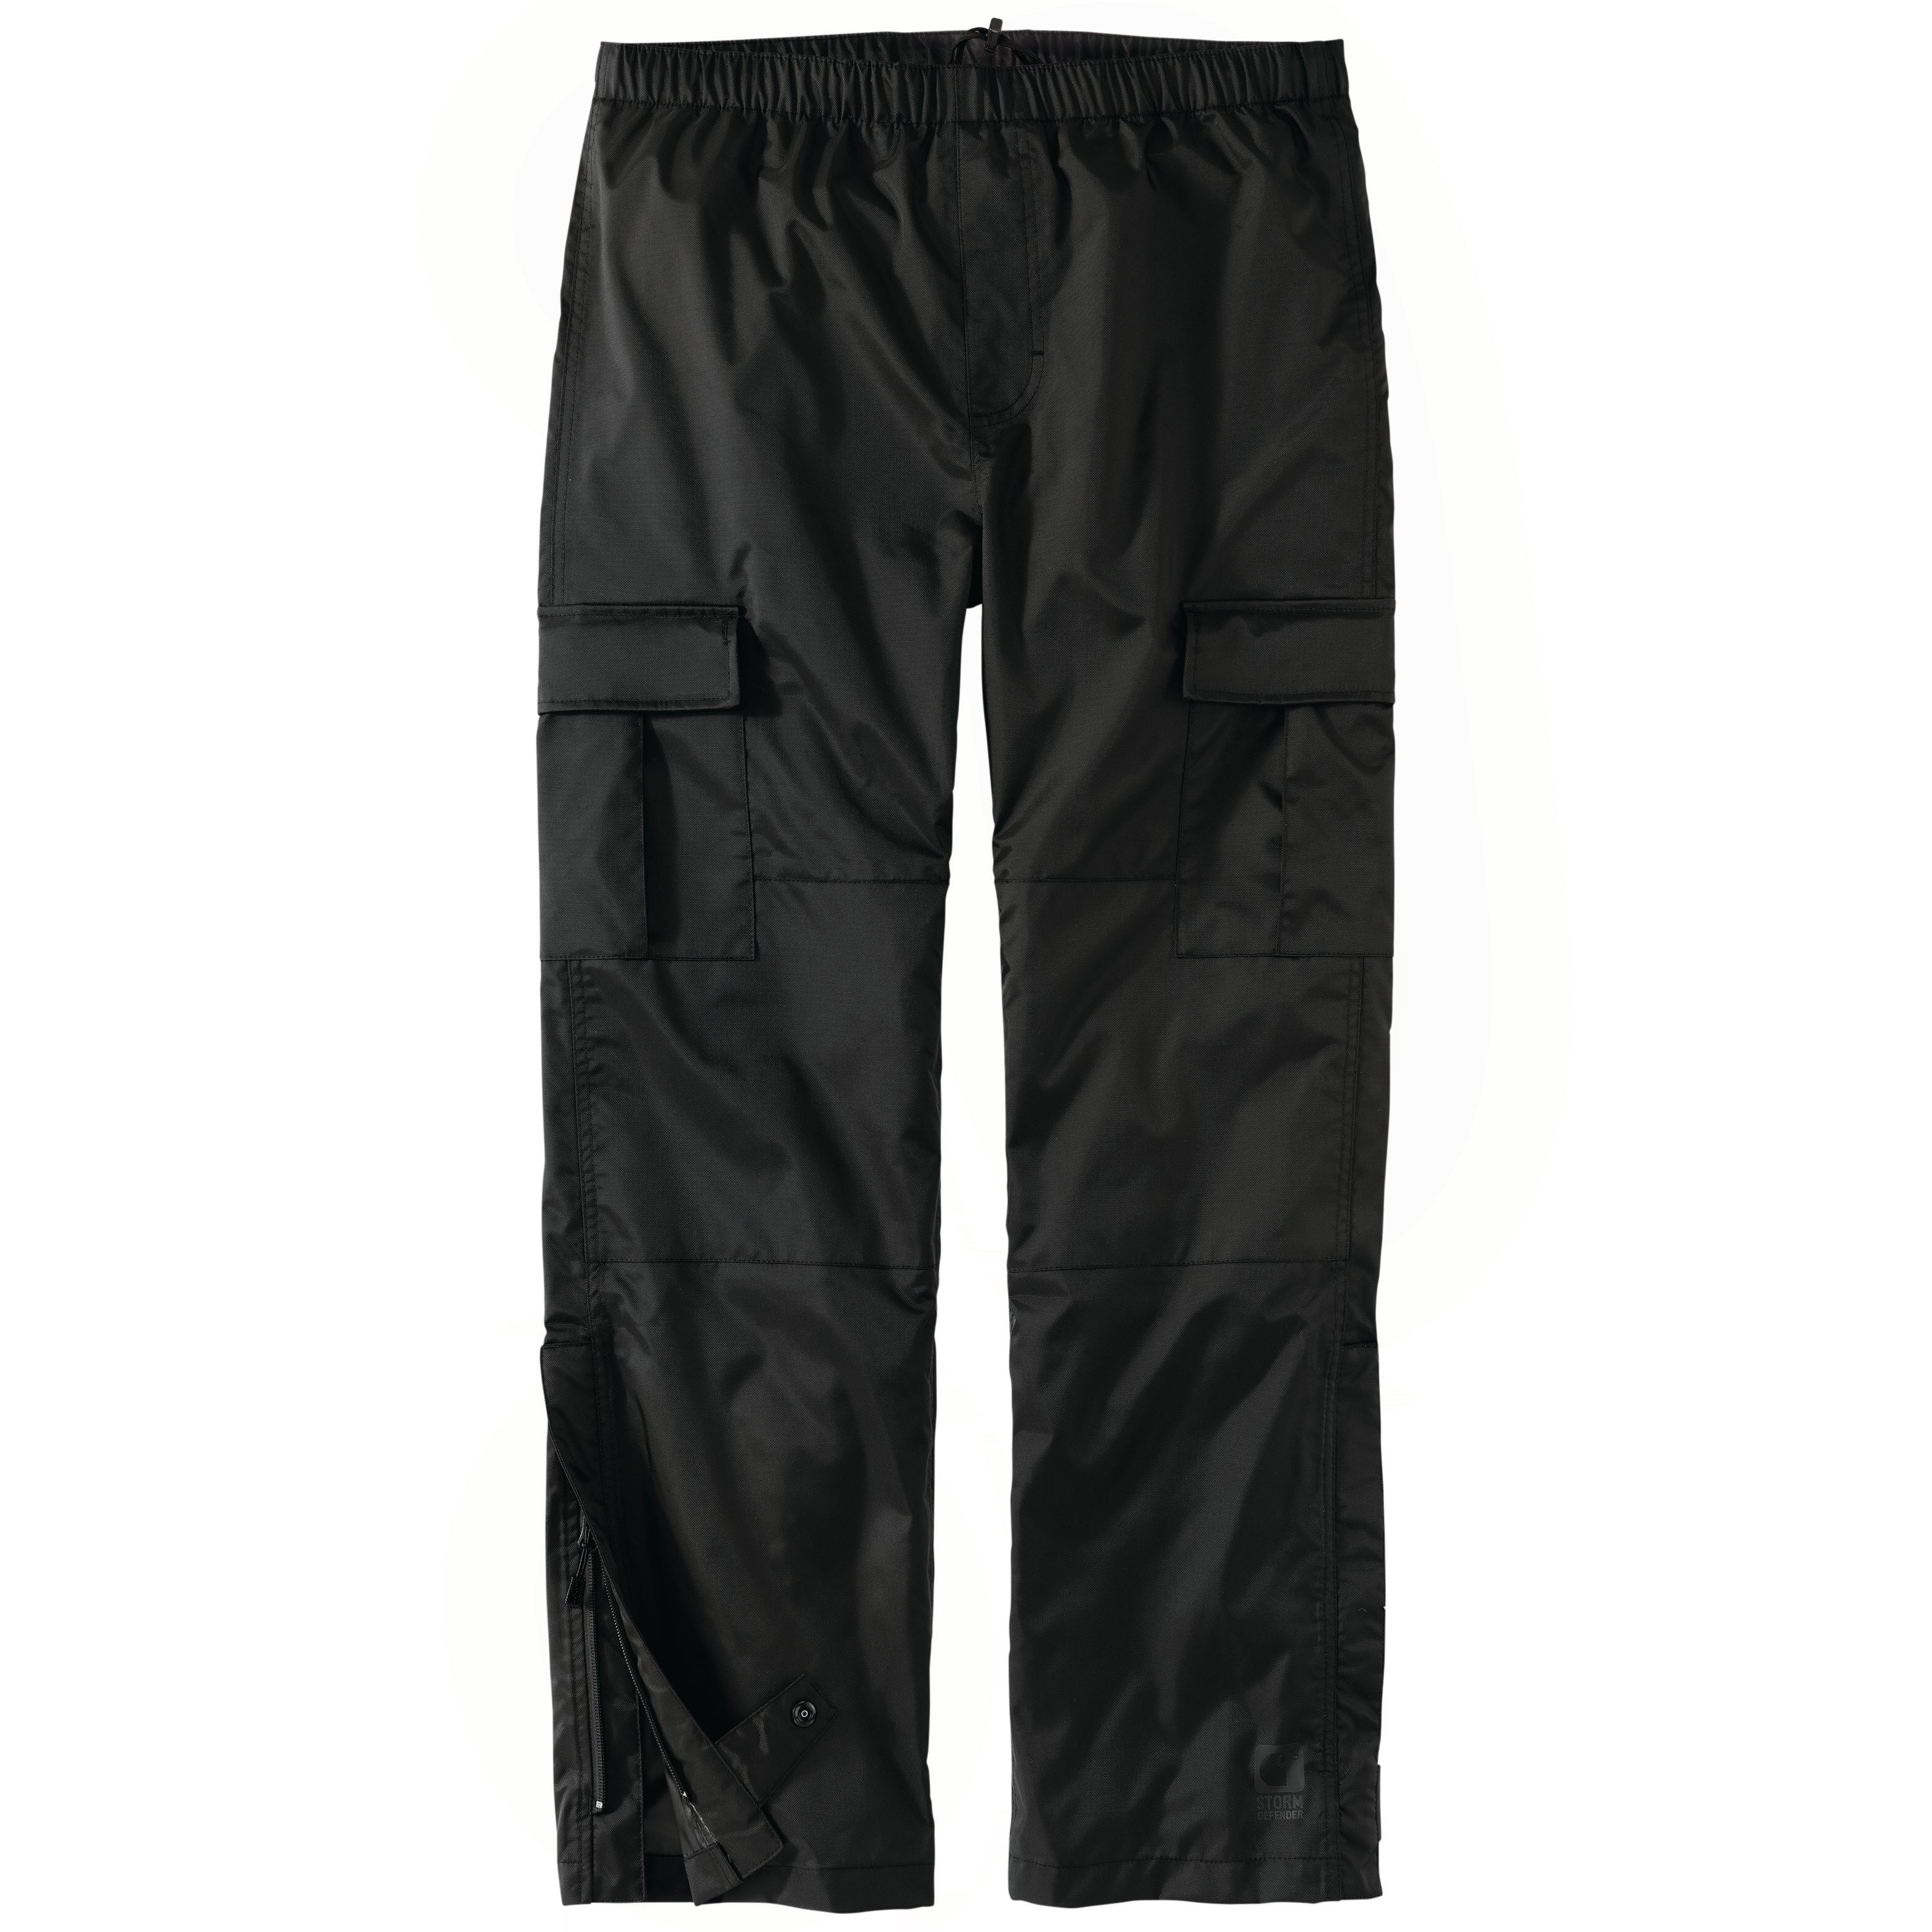 'Carhartt' Men's Dry Harbor WP Pant - Black